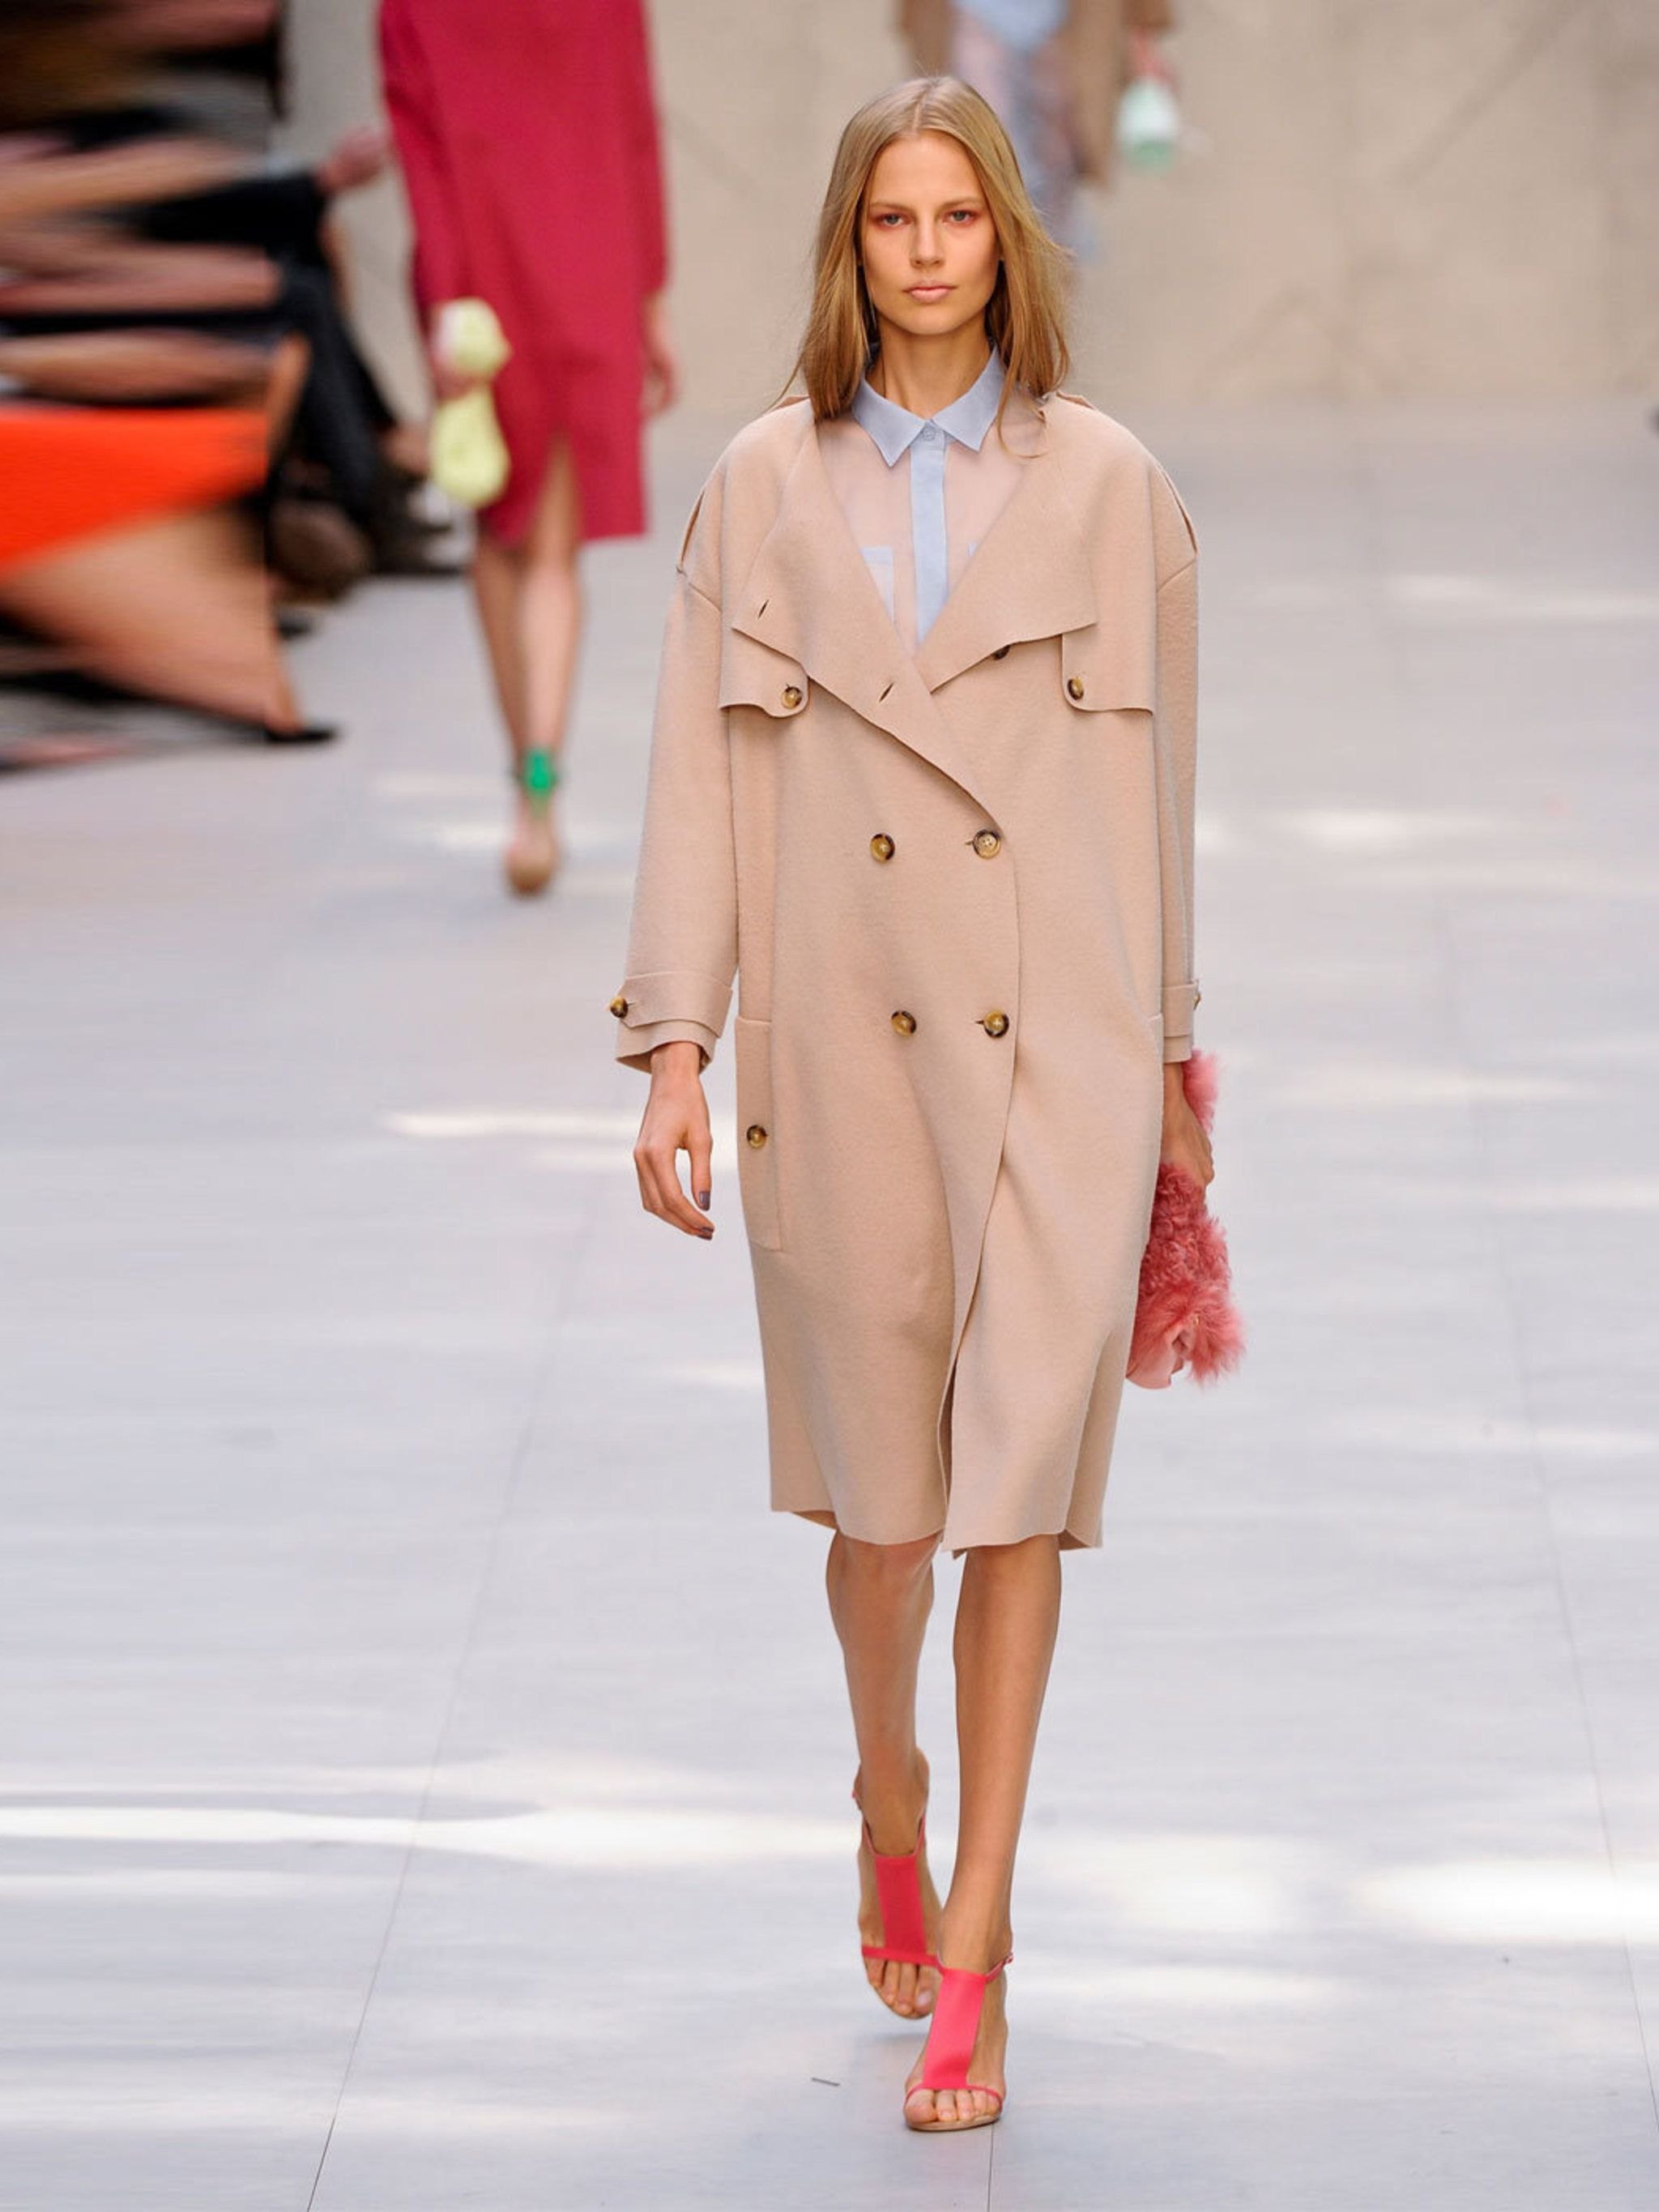 images Olympia Le-Tan SpringSummer 2019 RTW Offers Sixties Retro Looks